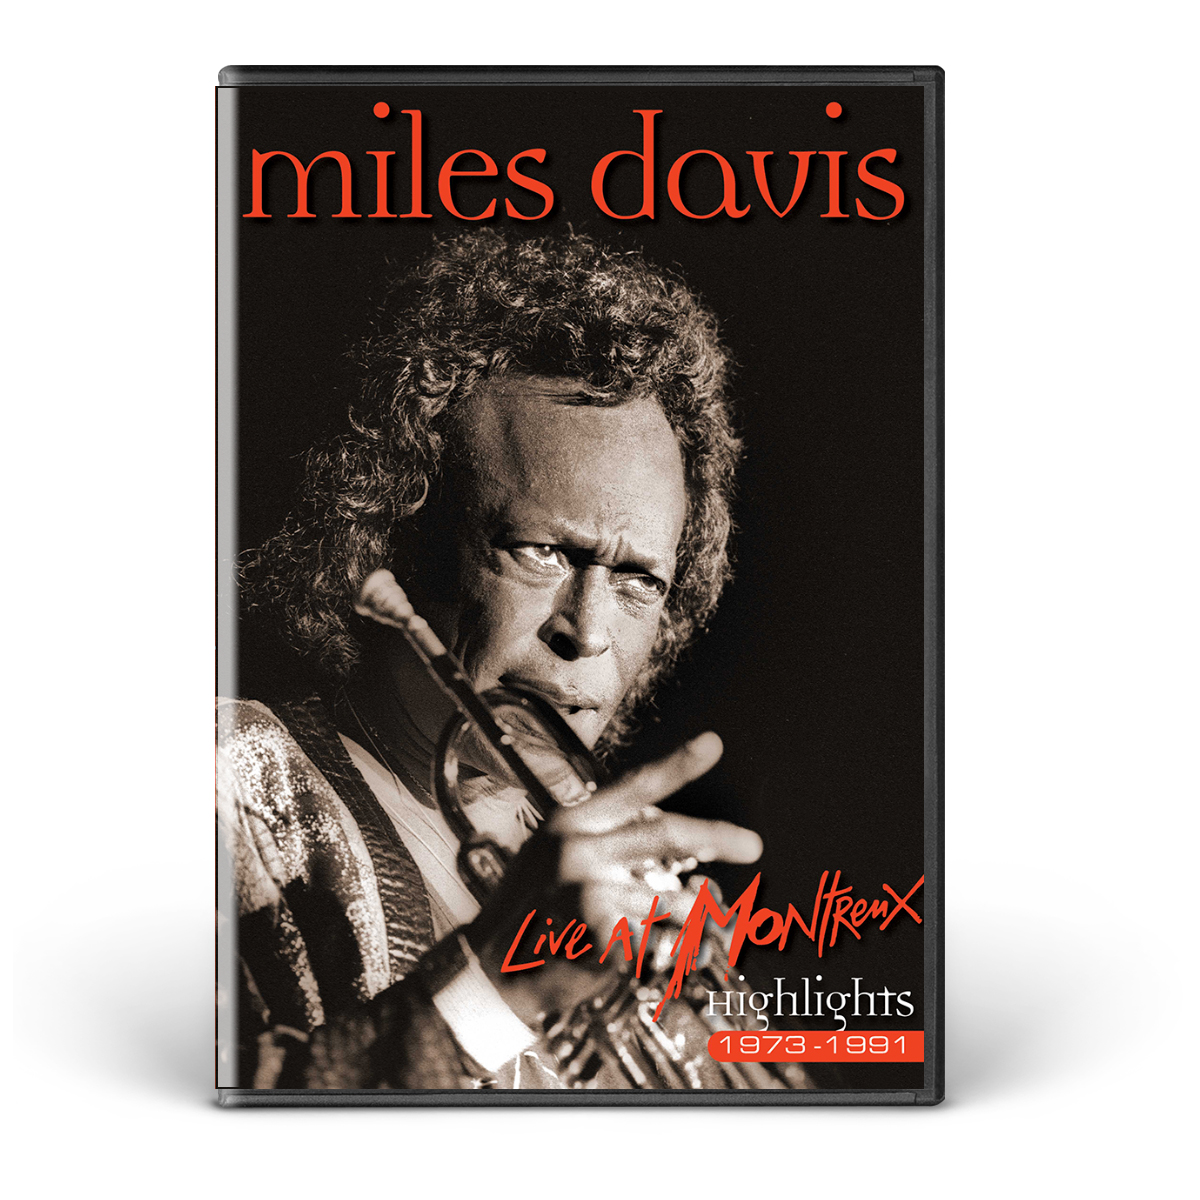 Miles Davis - Live At Montreux: Highlights 1973-1991 DVD